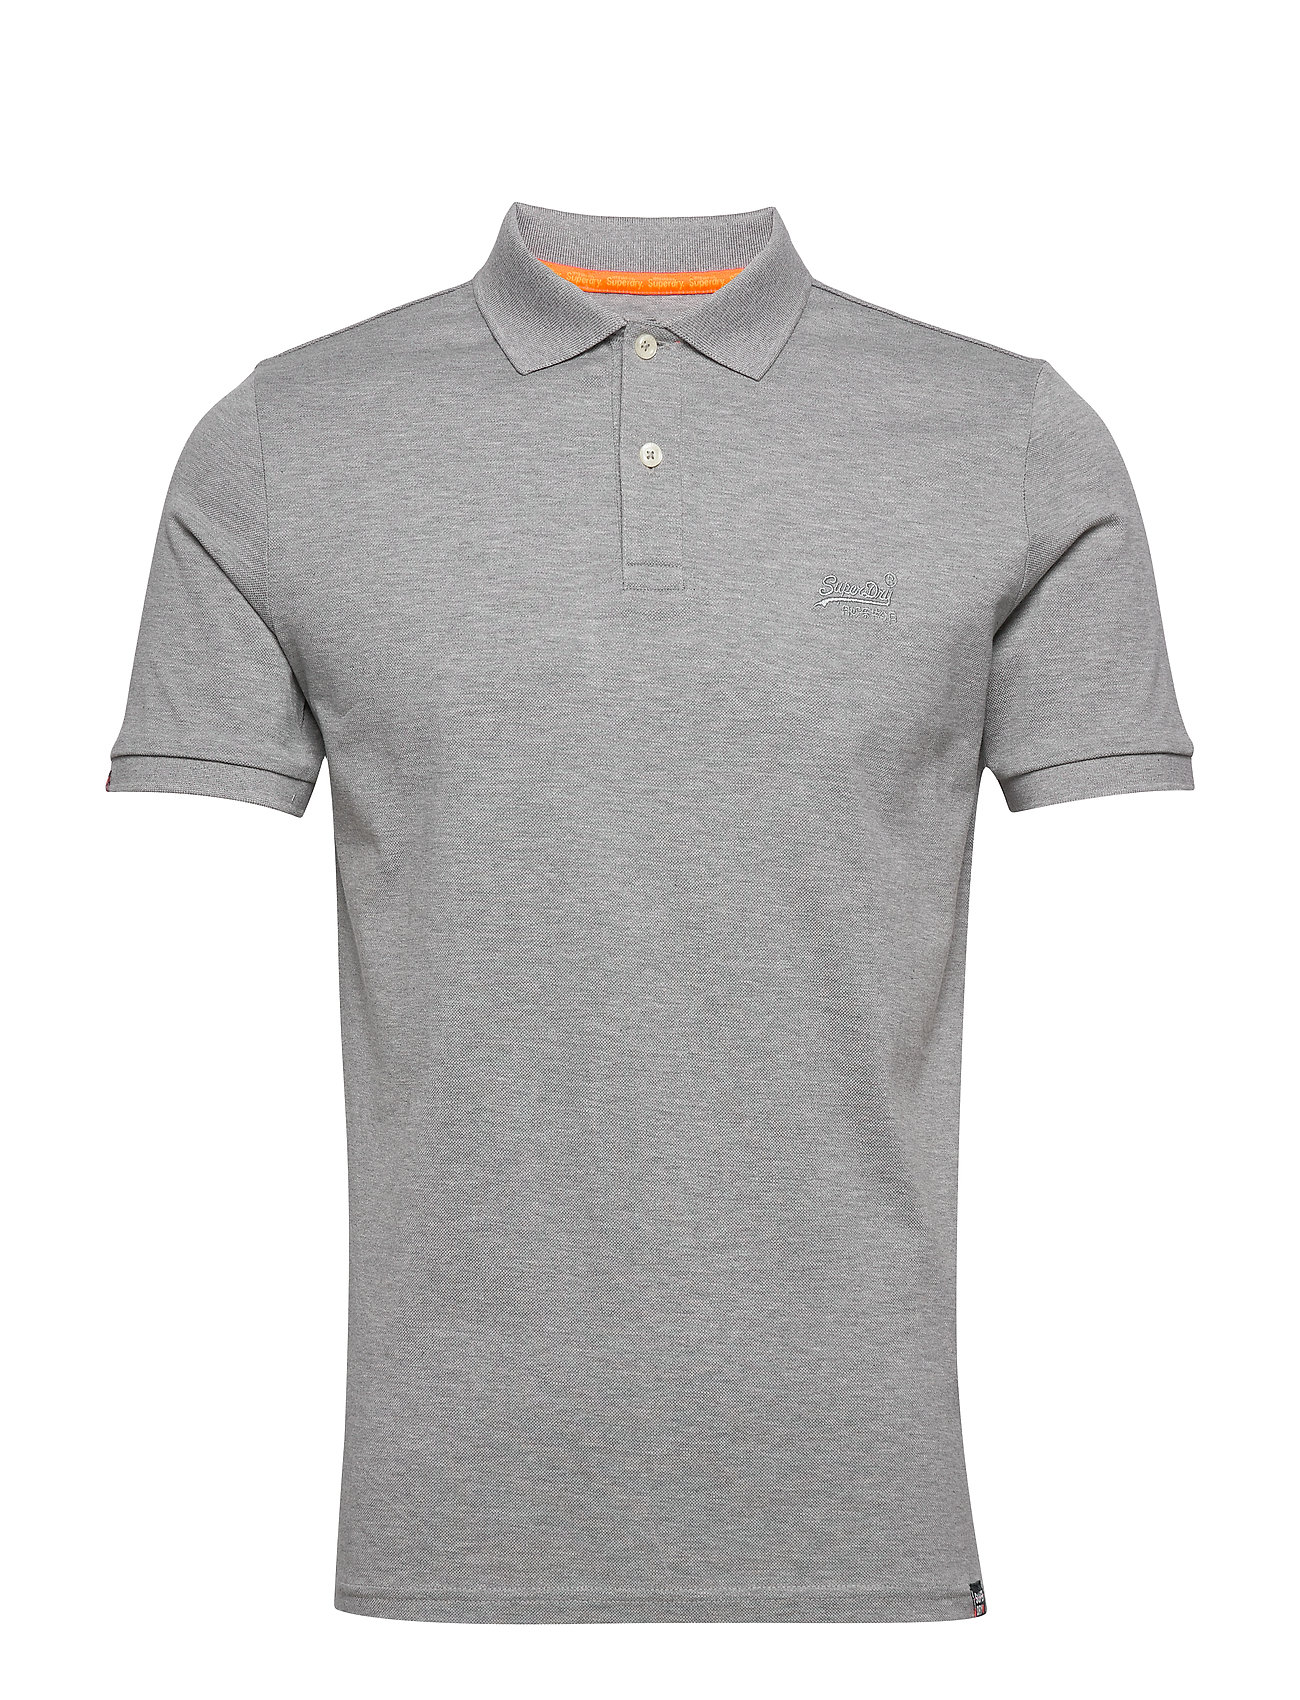 Superdry CLASSIC MICRO LITE PIQUE S/S POLO - GREY MARL